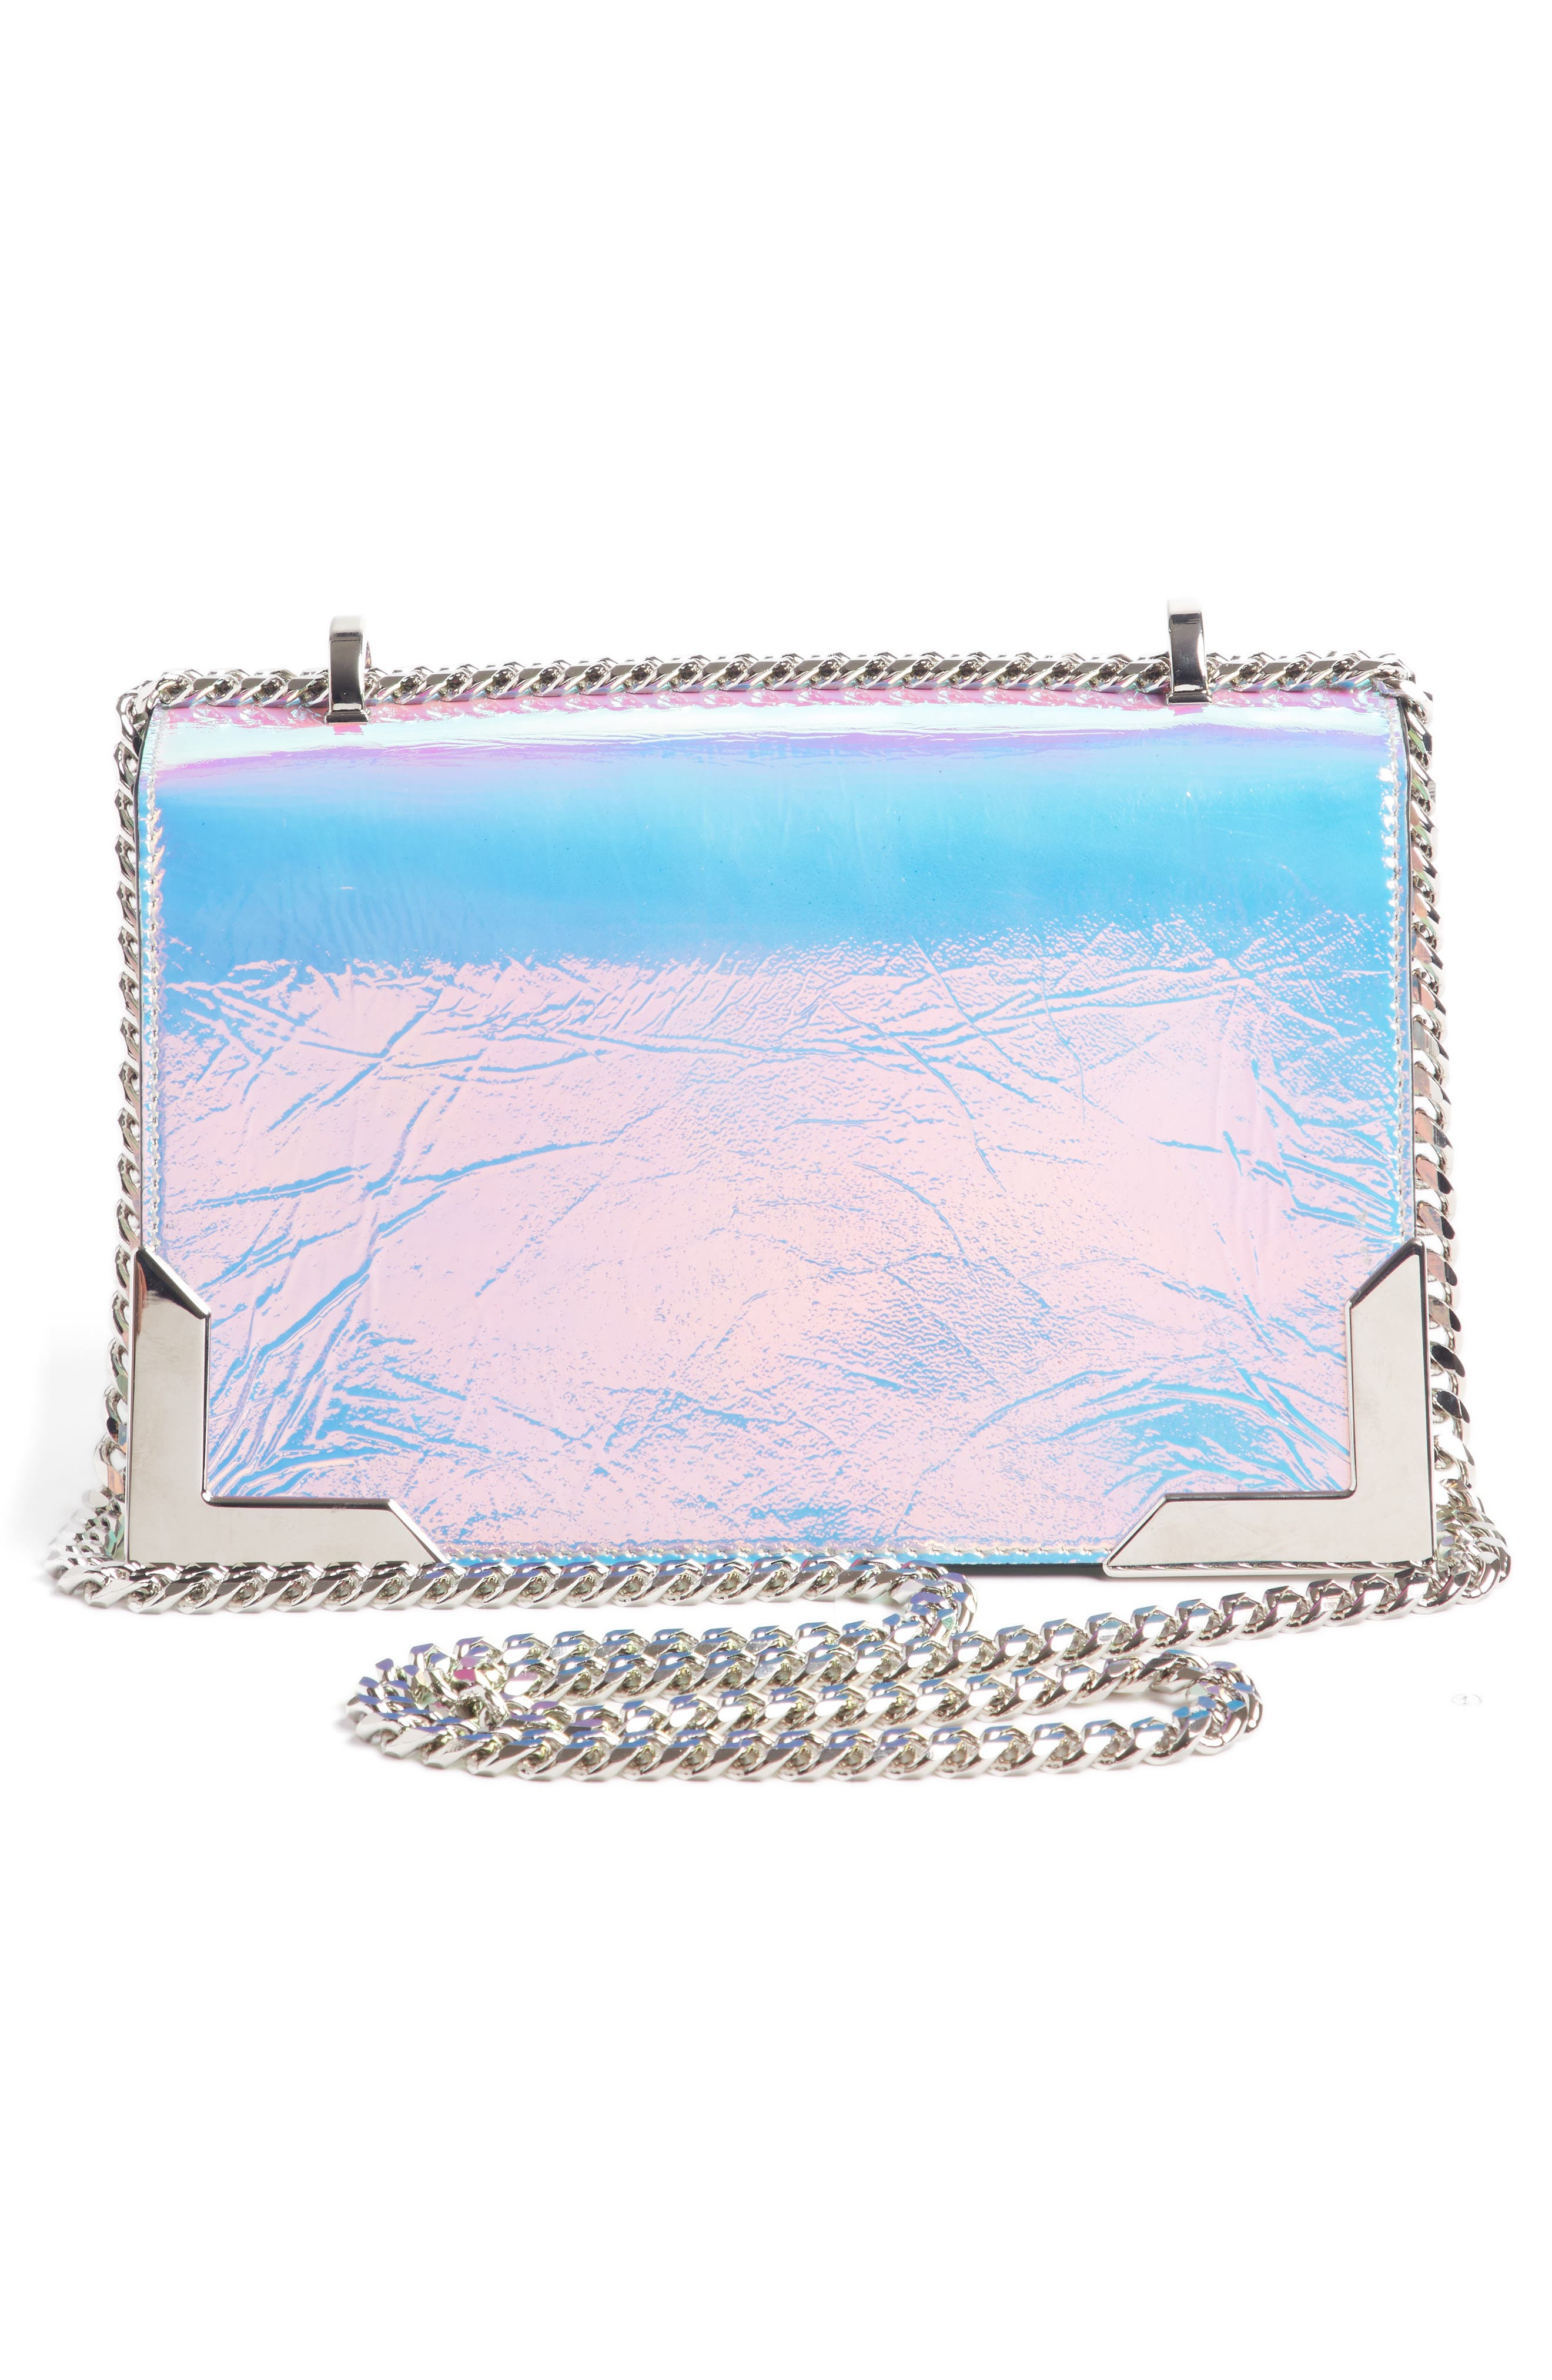 BALMAIN,                             Baby Box Holographic Leather Shoulder Bag,                             Alternate thumbnail 3, color,                             650